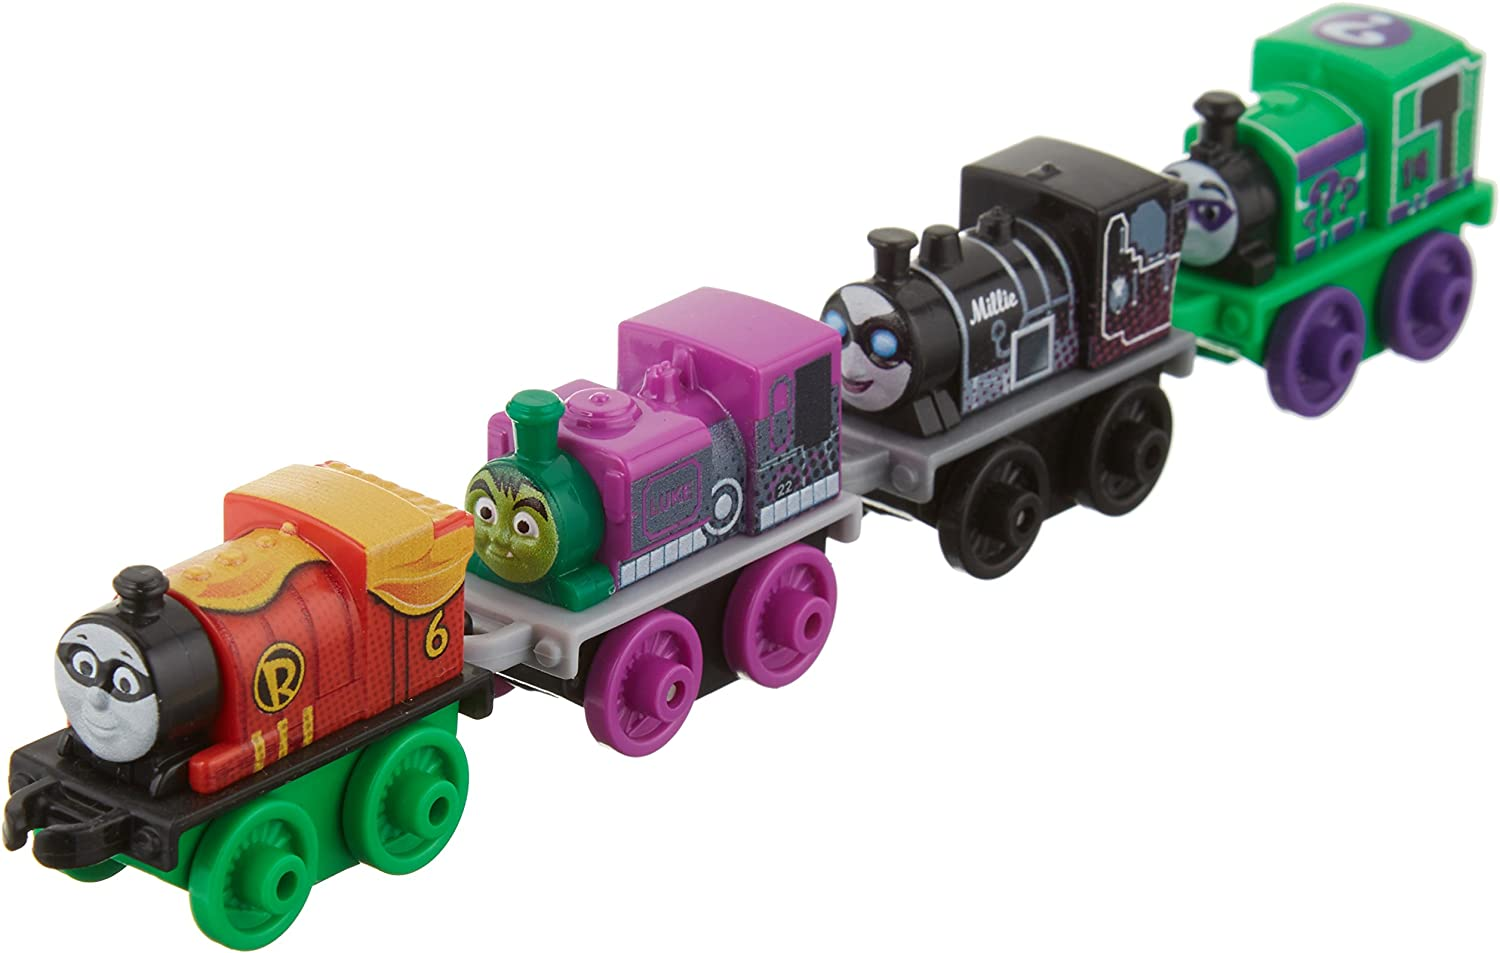 Lot of 2 Fisher-Price 4 Pack Thomas the Train DC Super Friends Characters